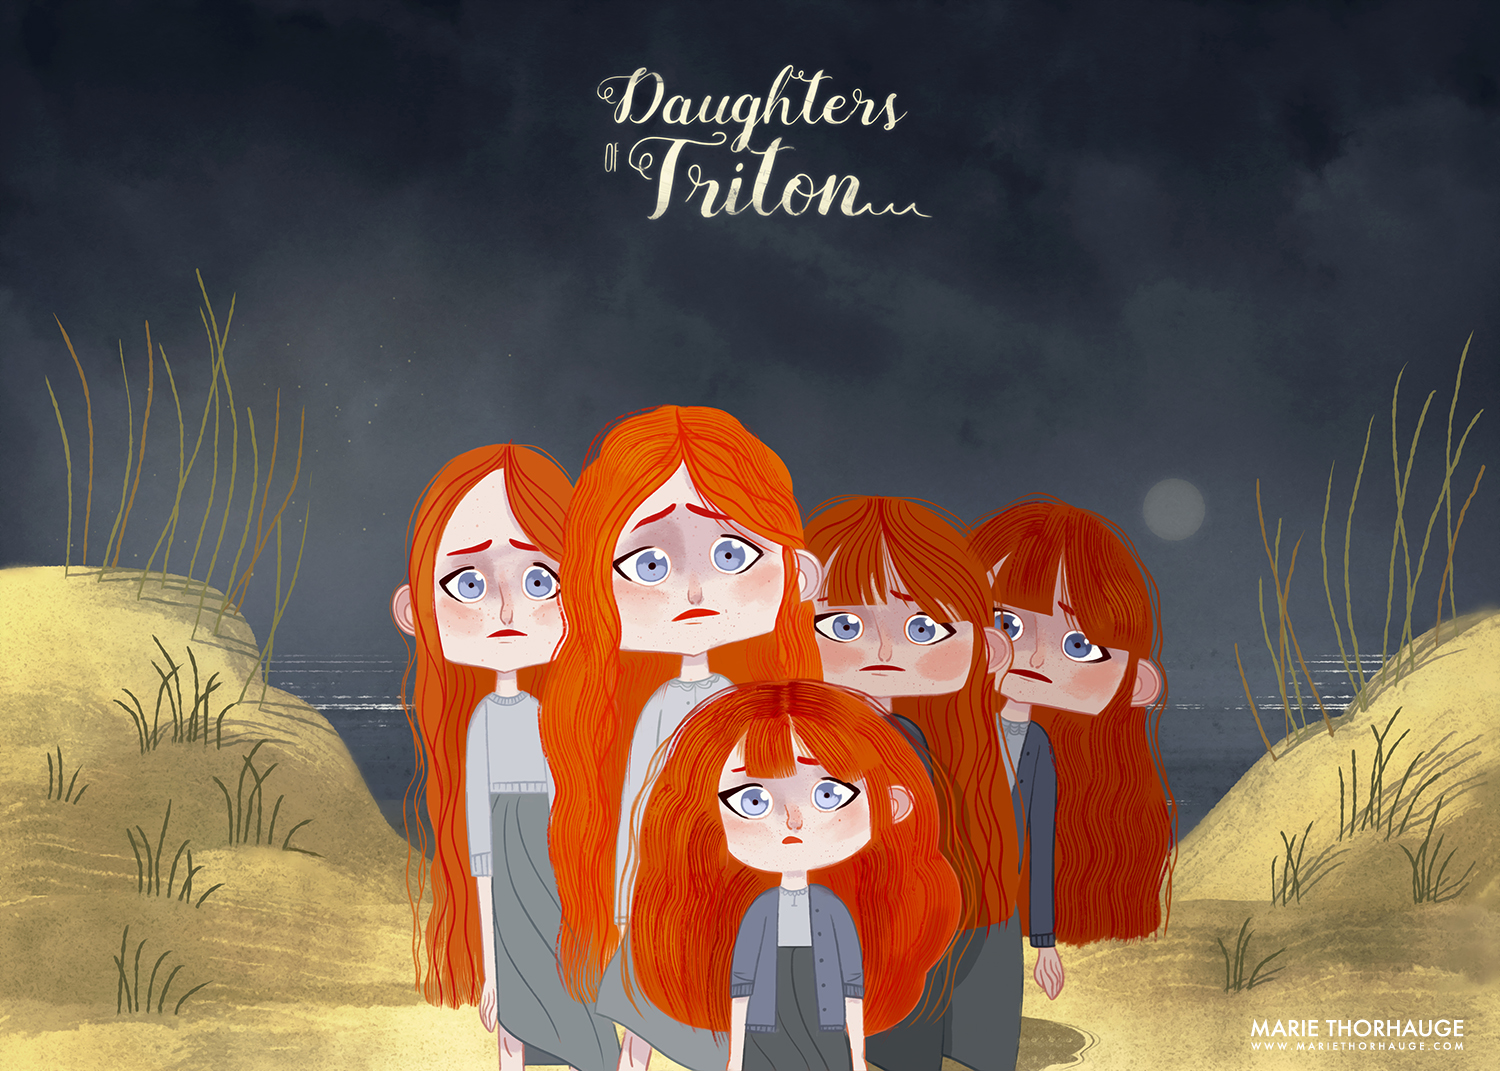 A3_Marie-Thorhauge_Illustration_Daughters-of-Triton_ill_sml.jpg